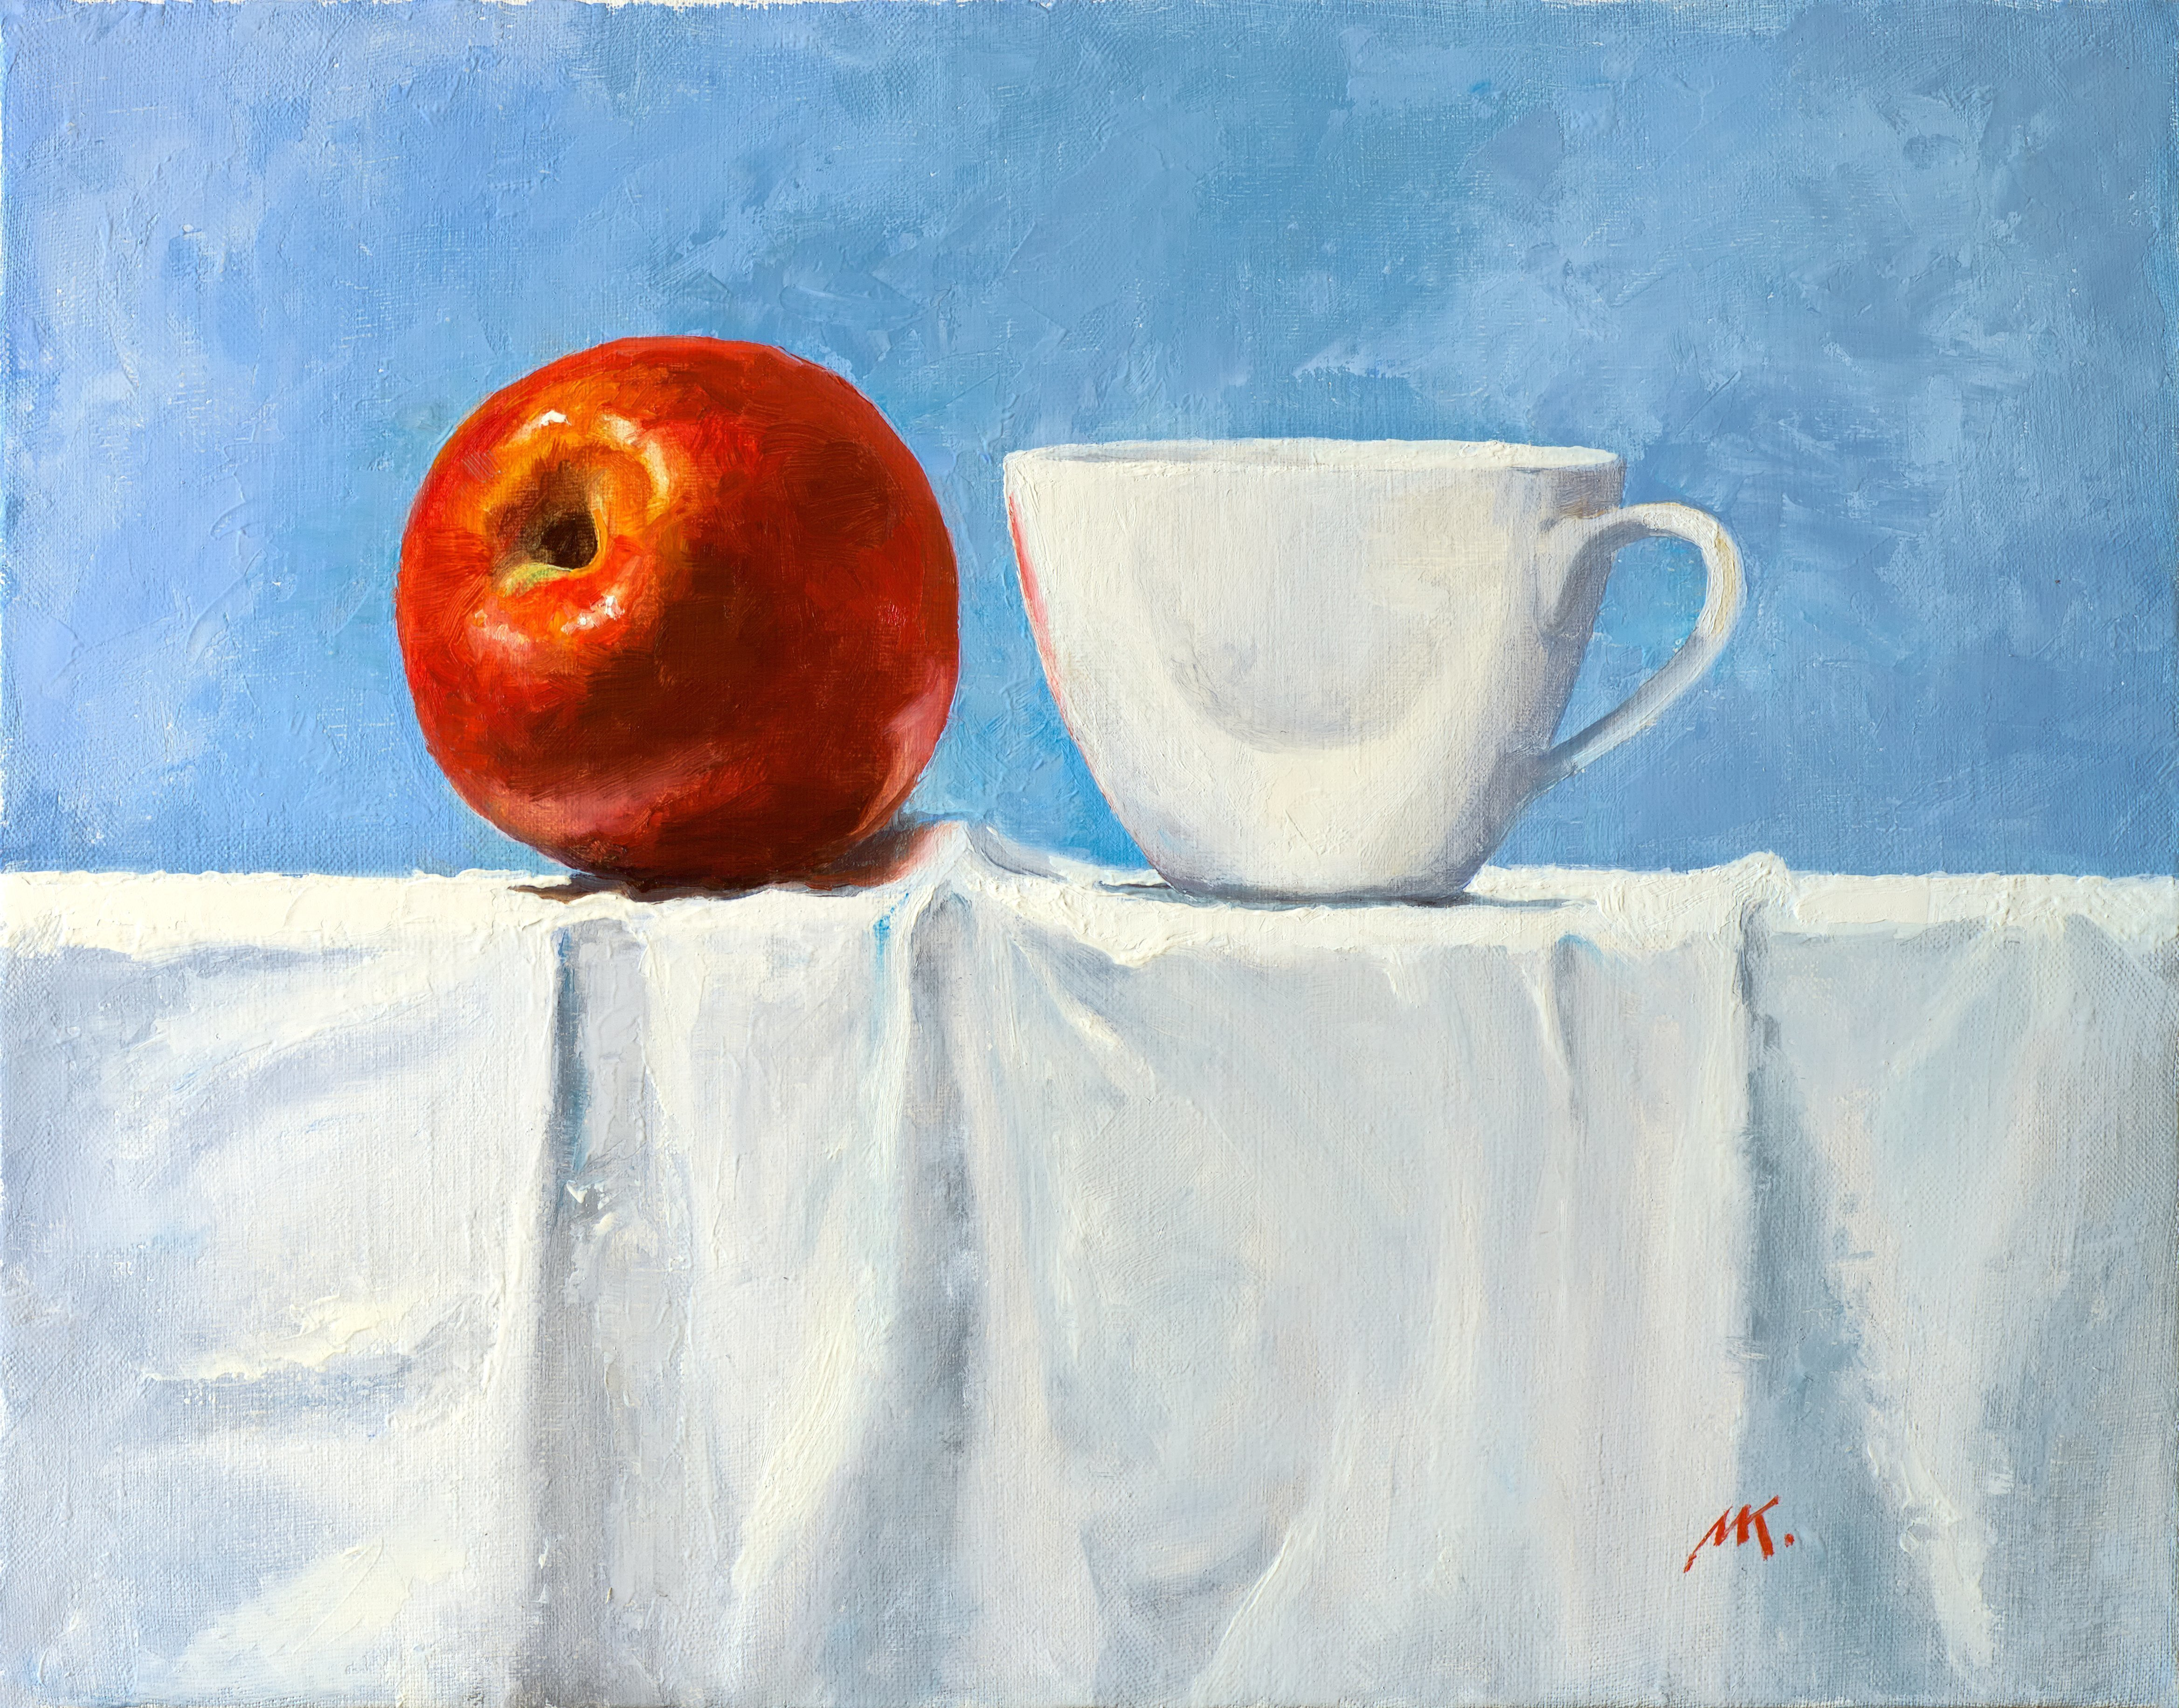 Mikhail Velavok; red white, 2017, Original Painting Oil, 17.5 x 13.5 inches. Artwork description: 241 Original oil painting on canvas. The work is being sold unframed. The frame in the additional photo is an example only.still life, apple, red apple, cup, white cup, red, white, wrinkle, fold, fabric, white fabric, tablecloth...